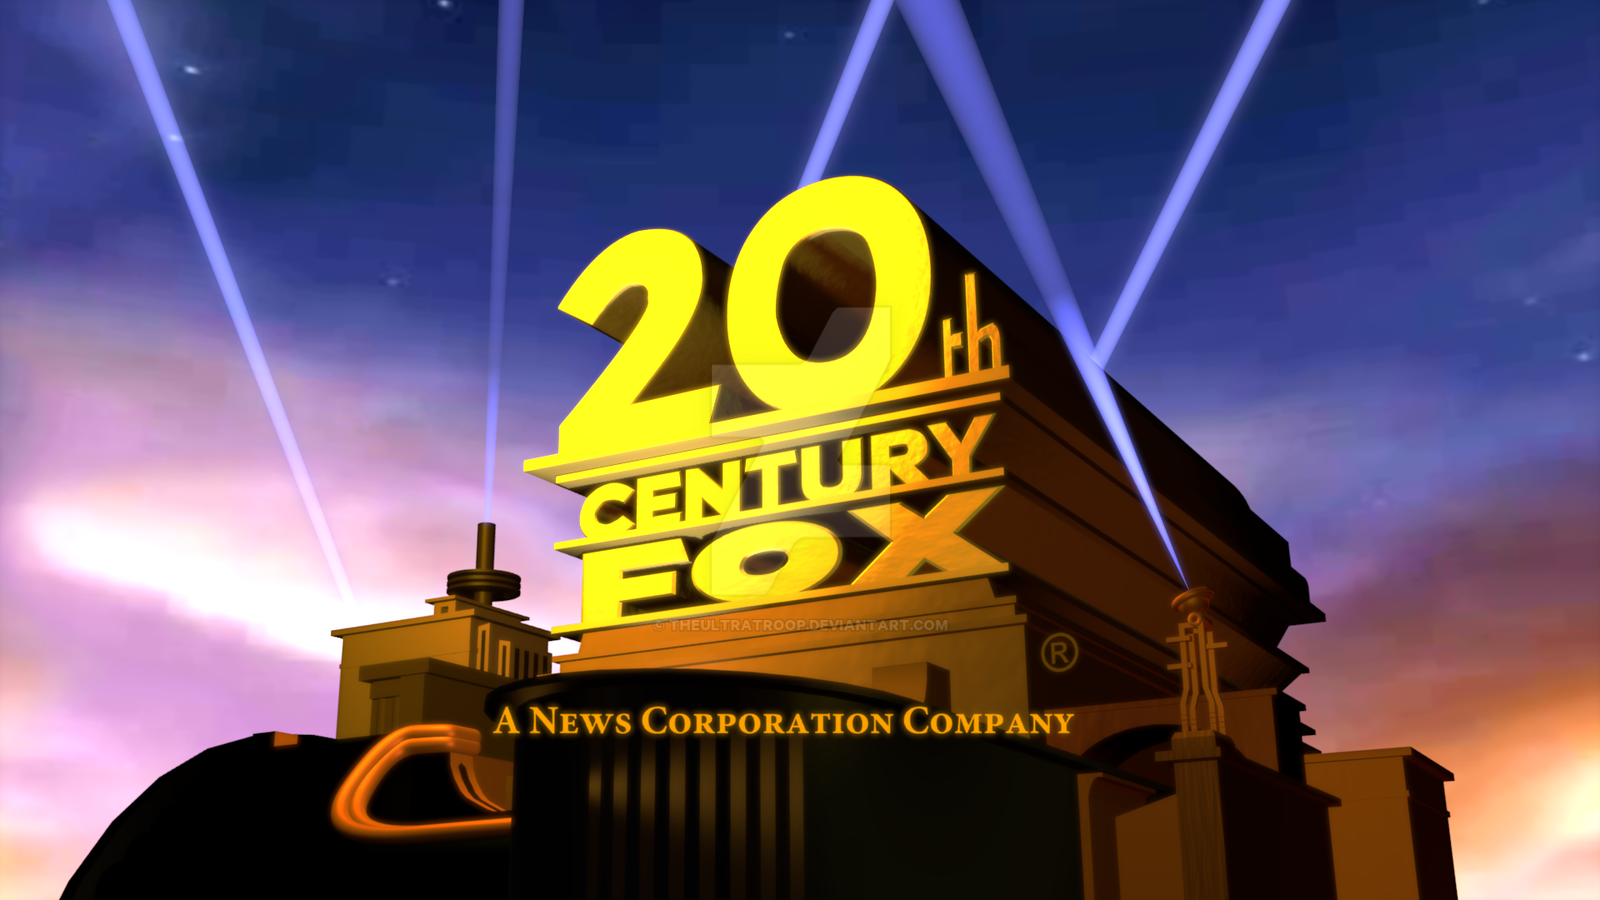 20th century fox 1994 logo remake by theultratroop on